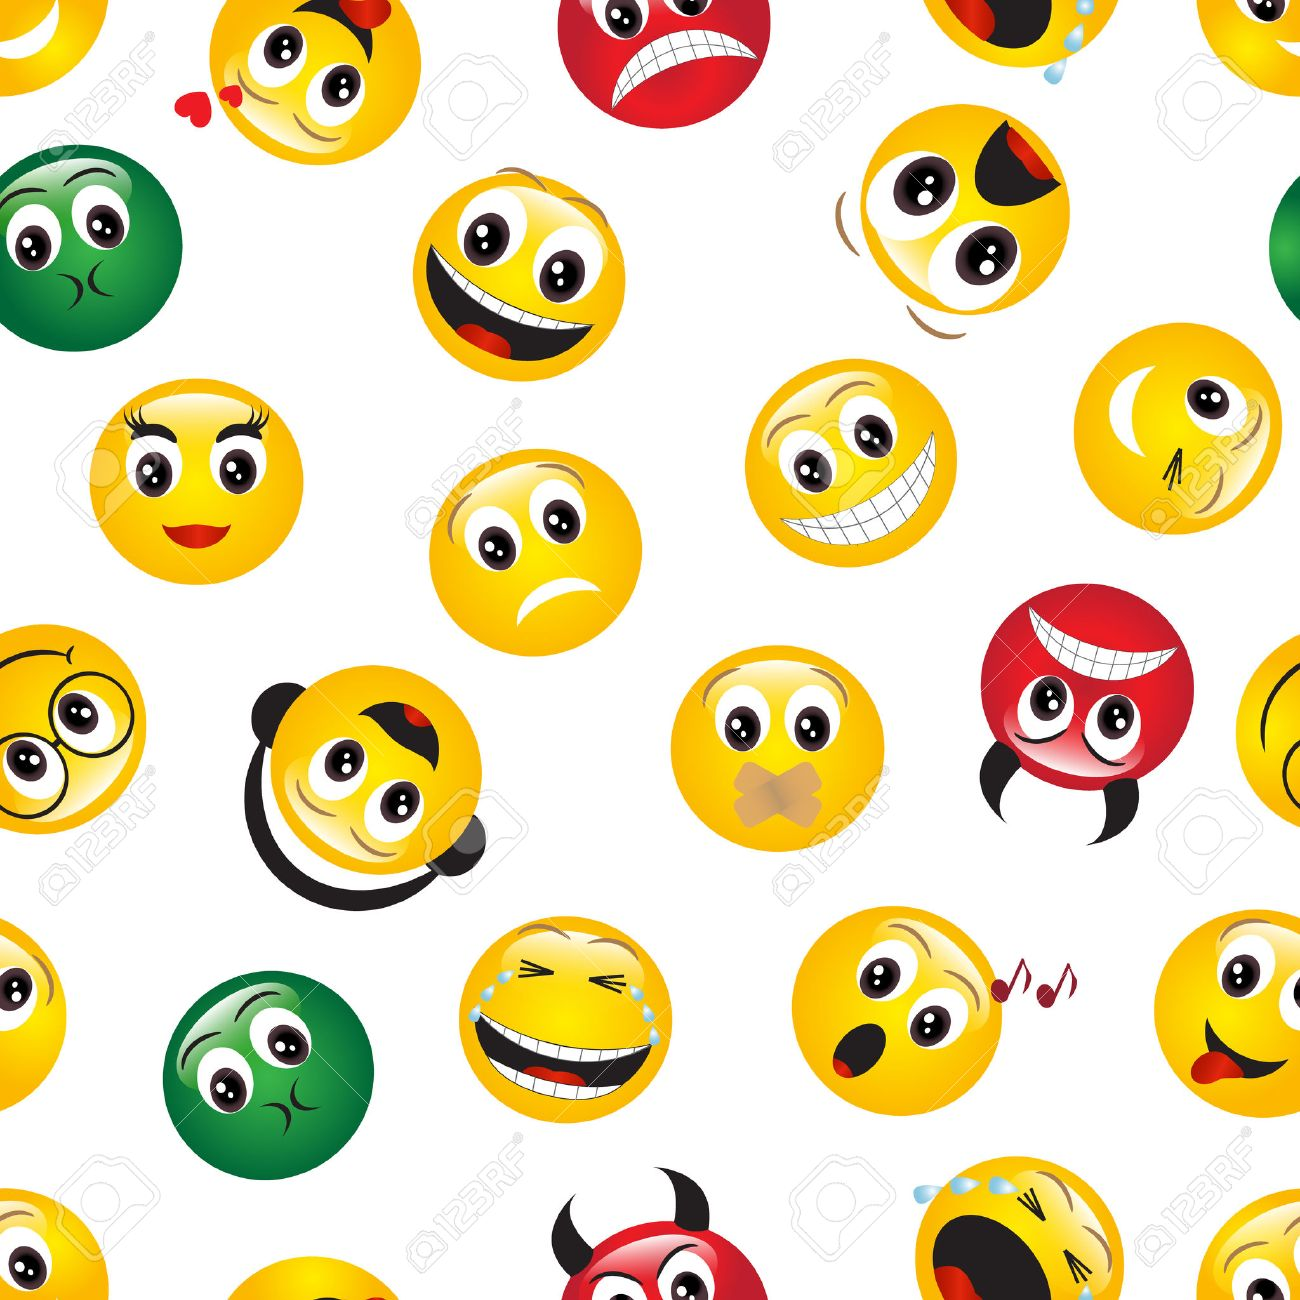 Lotus Notes Emoticons Suslo 1 Royalty Free Photos Pictures Images And Stock Photography